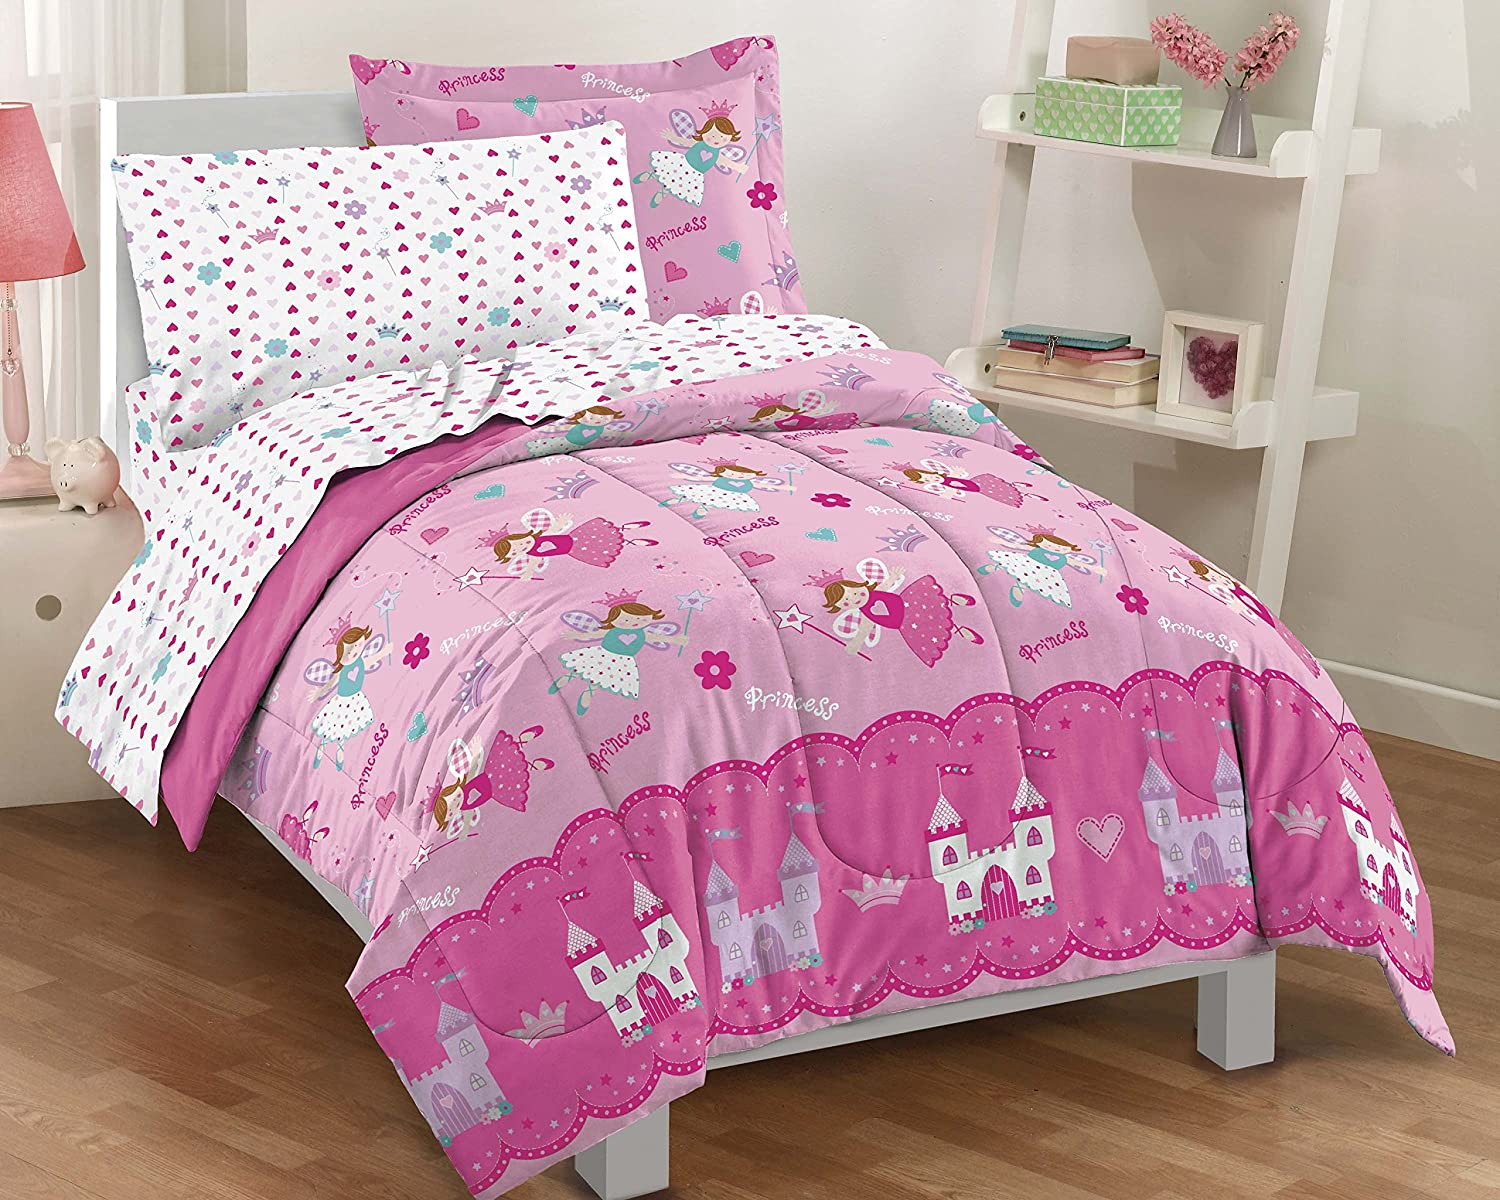 Dream Factory Magical Princess Ultra Soft Microfiber Girls Comforter Set, Pink